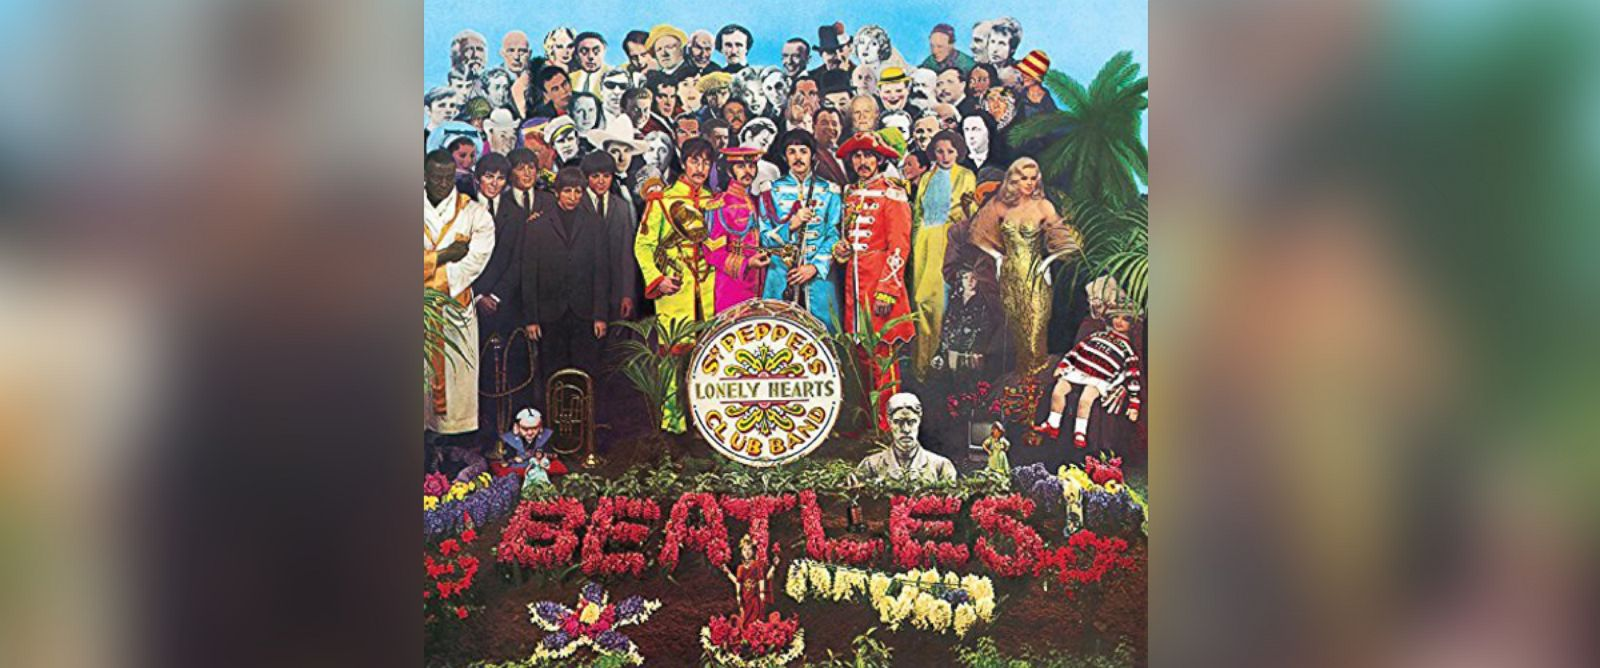 """PHOTO: The album cover from the Beatles, """"Sgt. Peppers Lonely Hearts Club Band."""""""